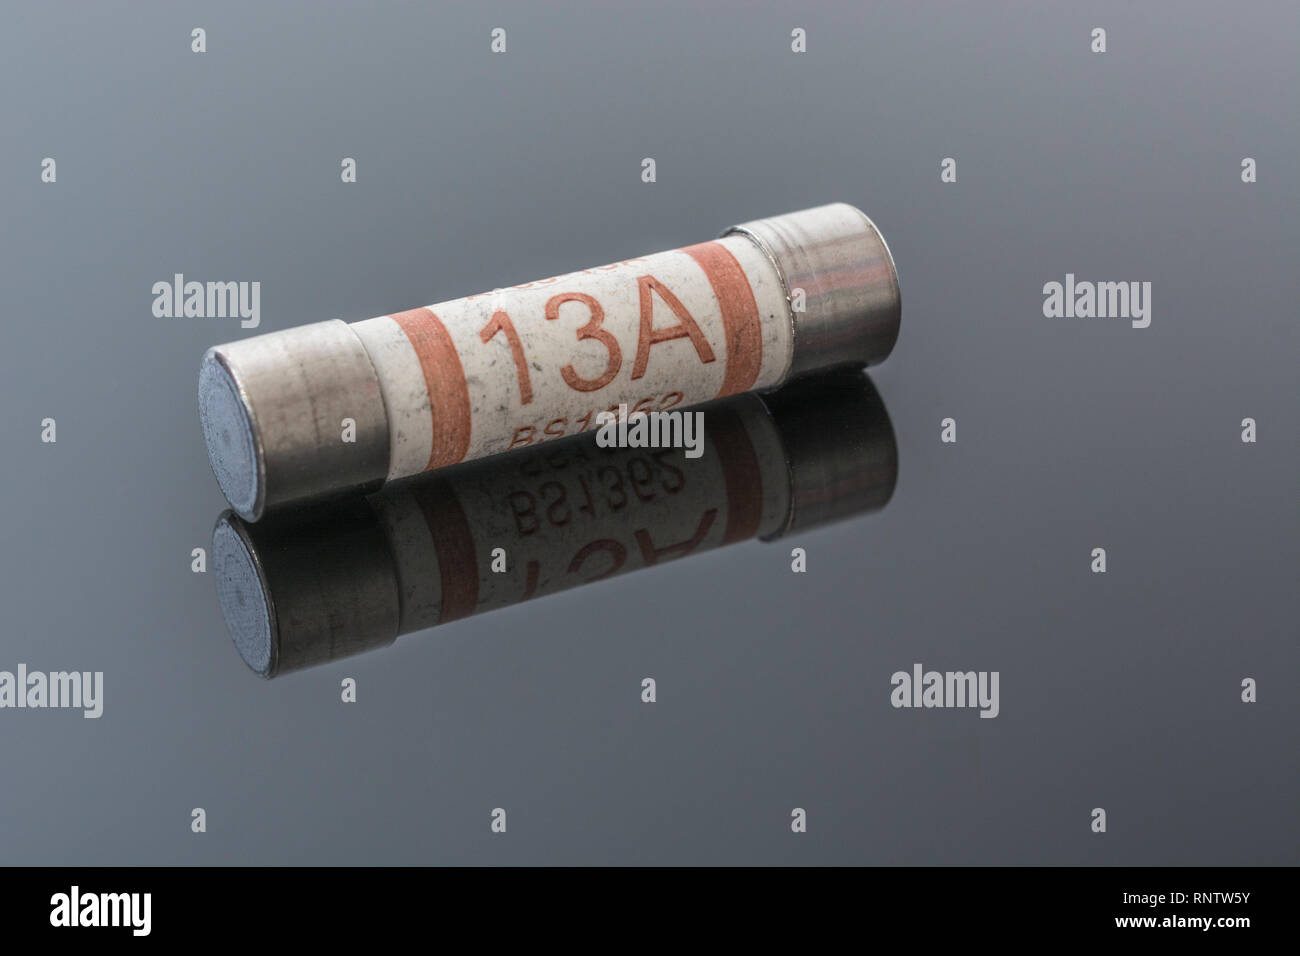 Domestic appliance electrical 13 Amp fuse (Ceramic Cartridge type) on reflective black background. Metaphor electrical safety. 25mm L x 6.3mm D Stock Photo